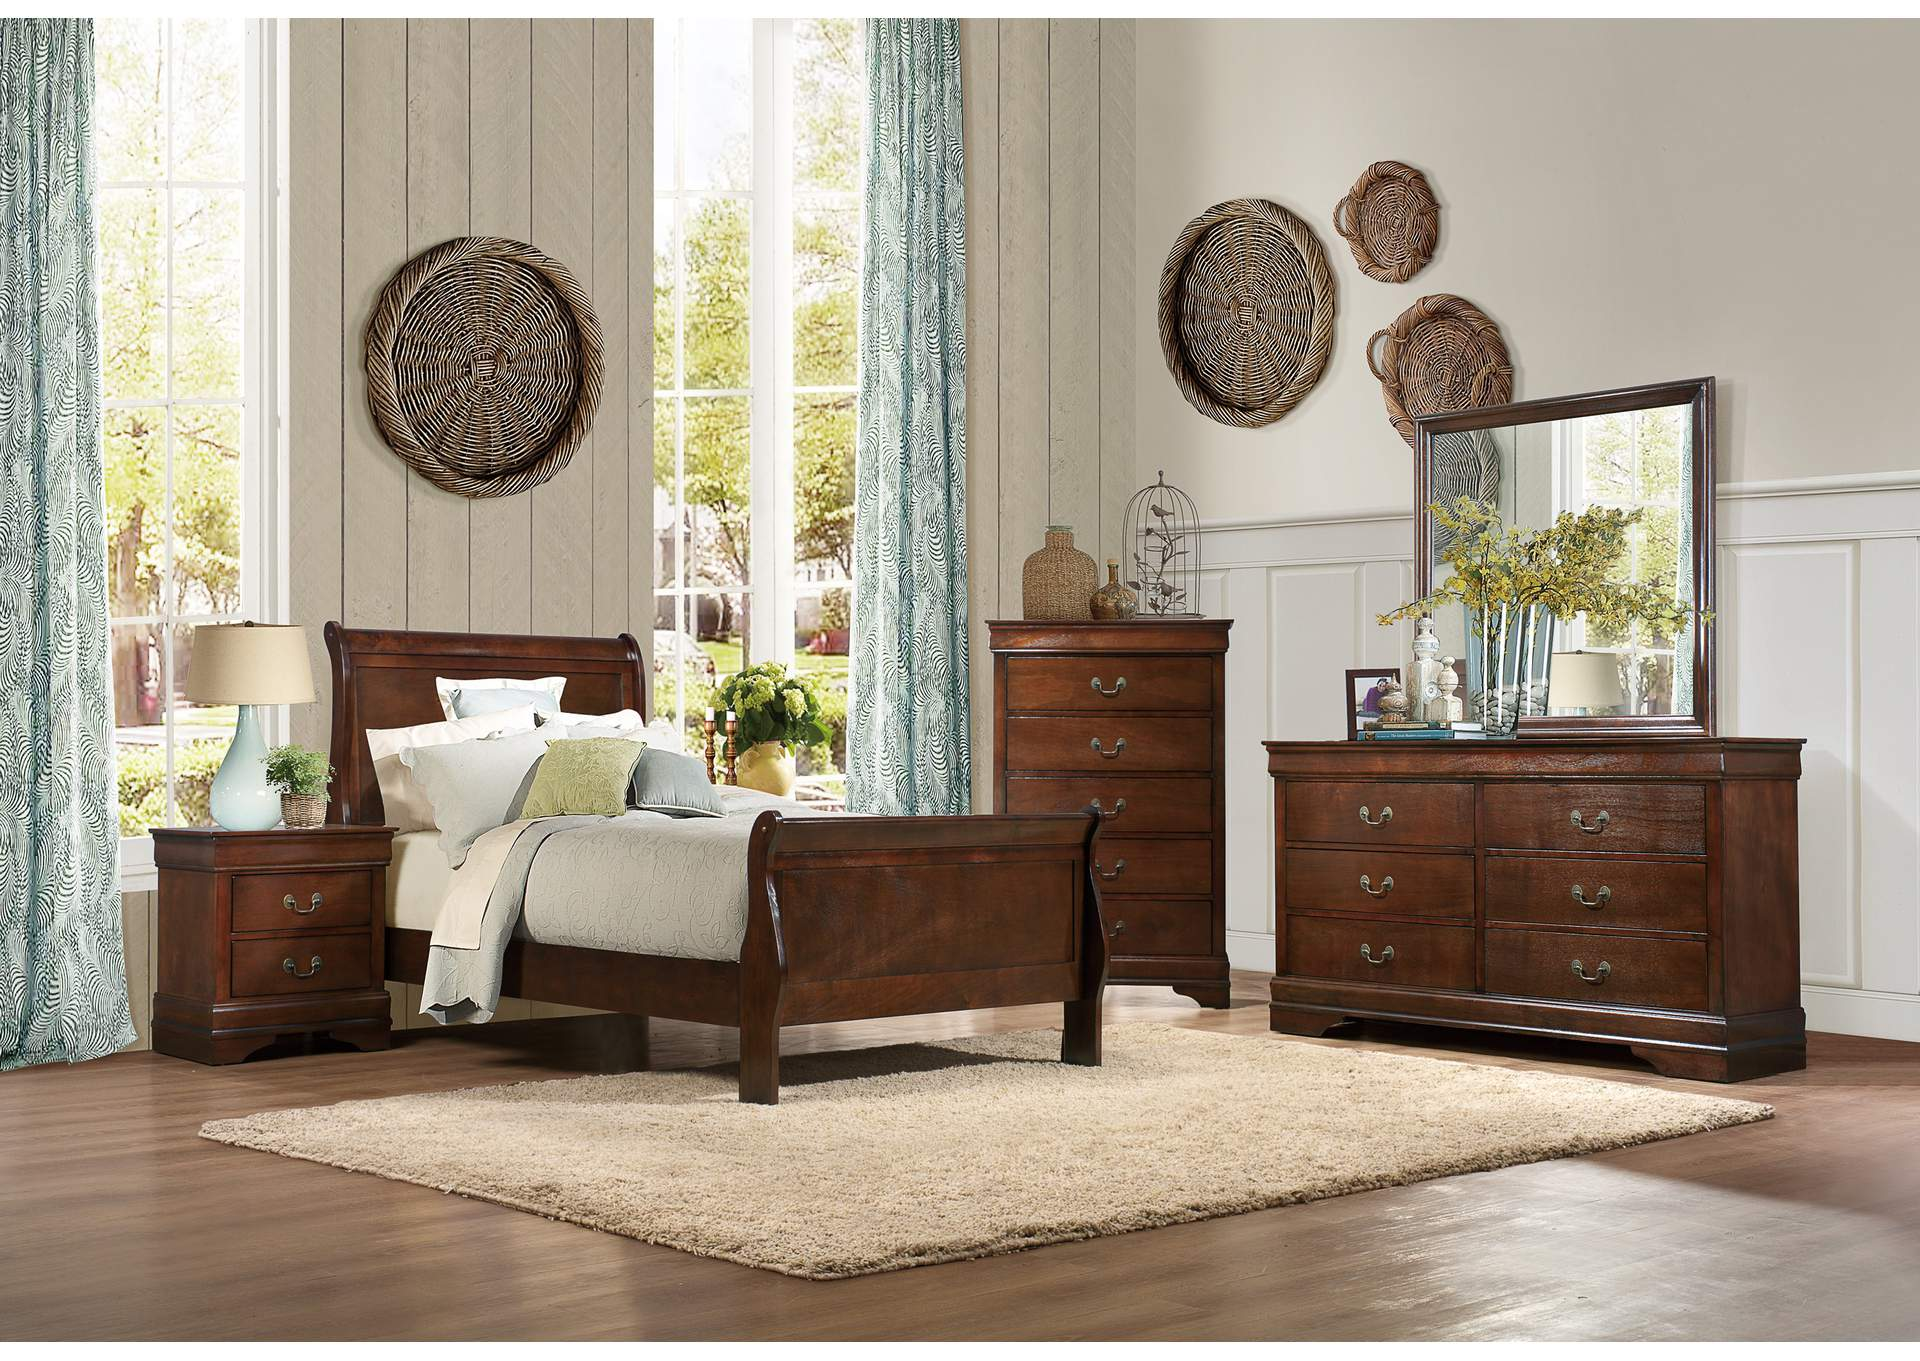 Mayville Burnish Brown Cherry Twin Sleigh Bed,Homelegance